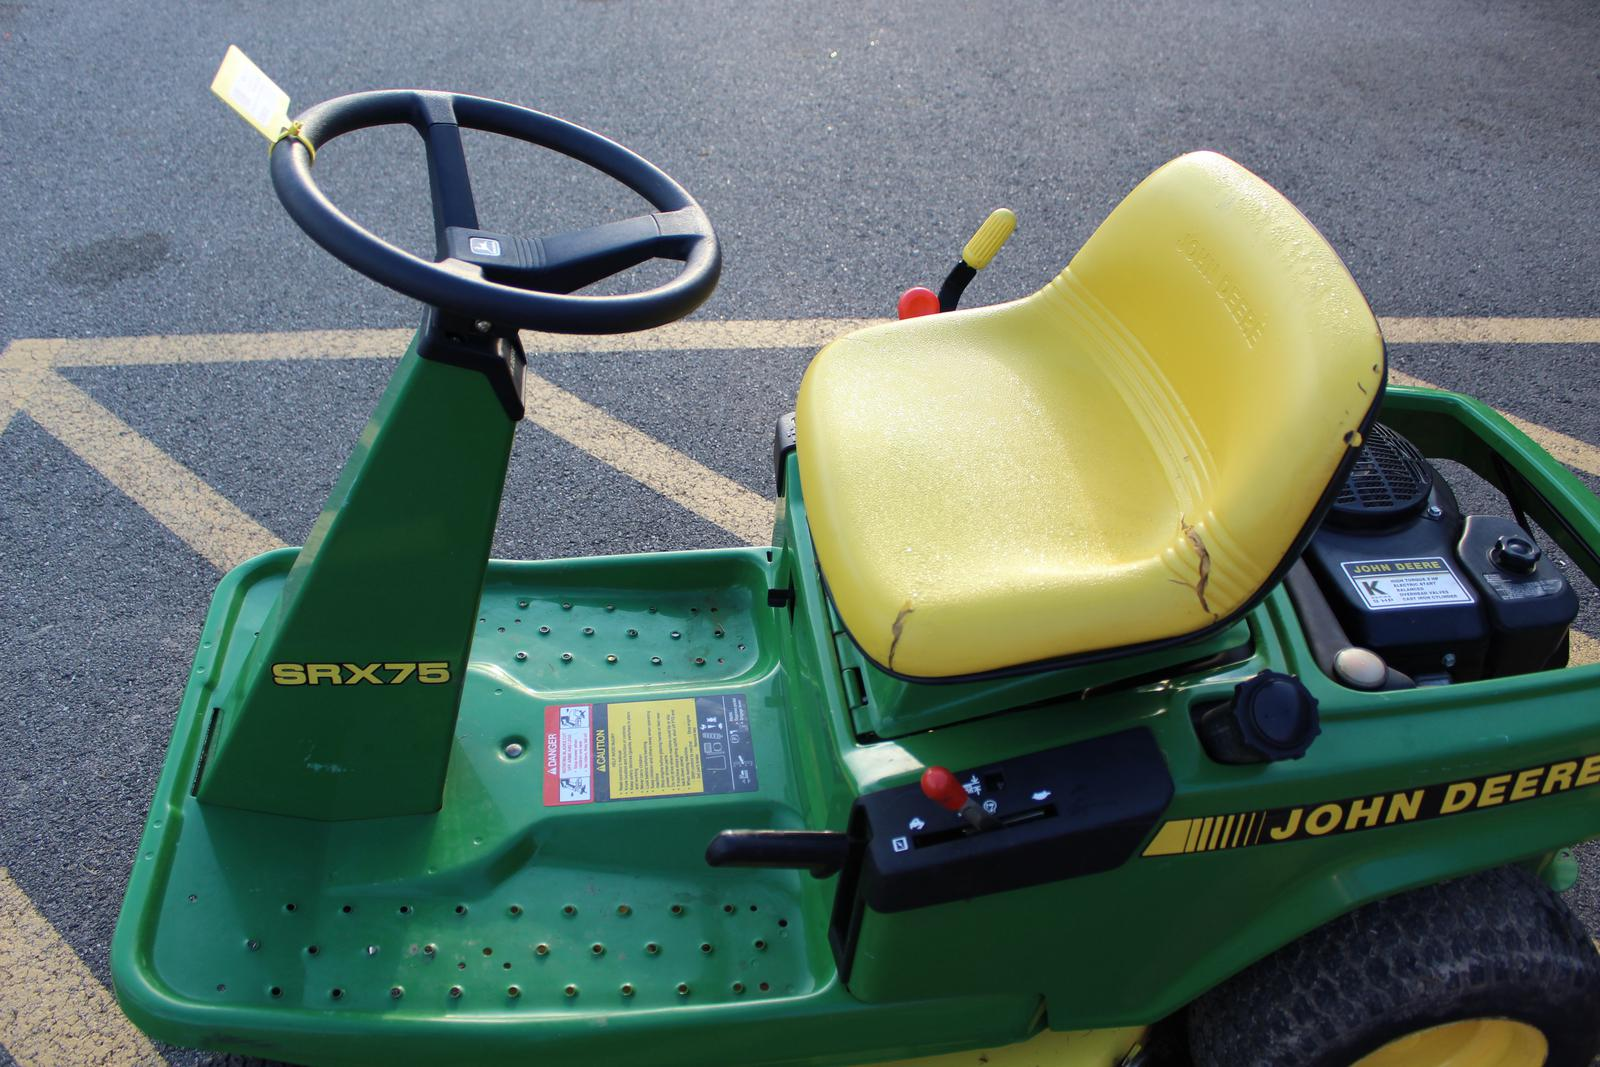 John Deere SRX75 REAR ENGINE RIDING MOWER 30